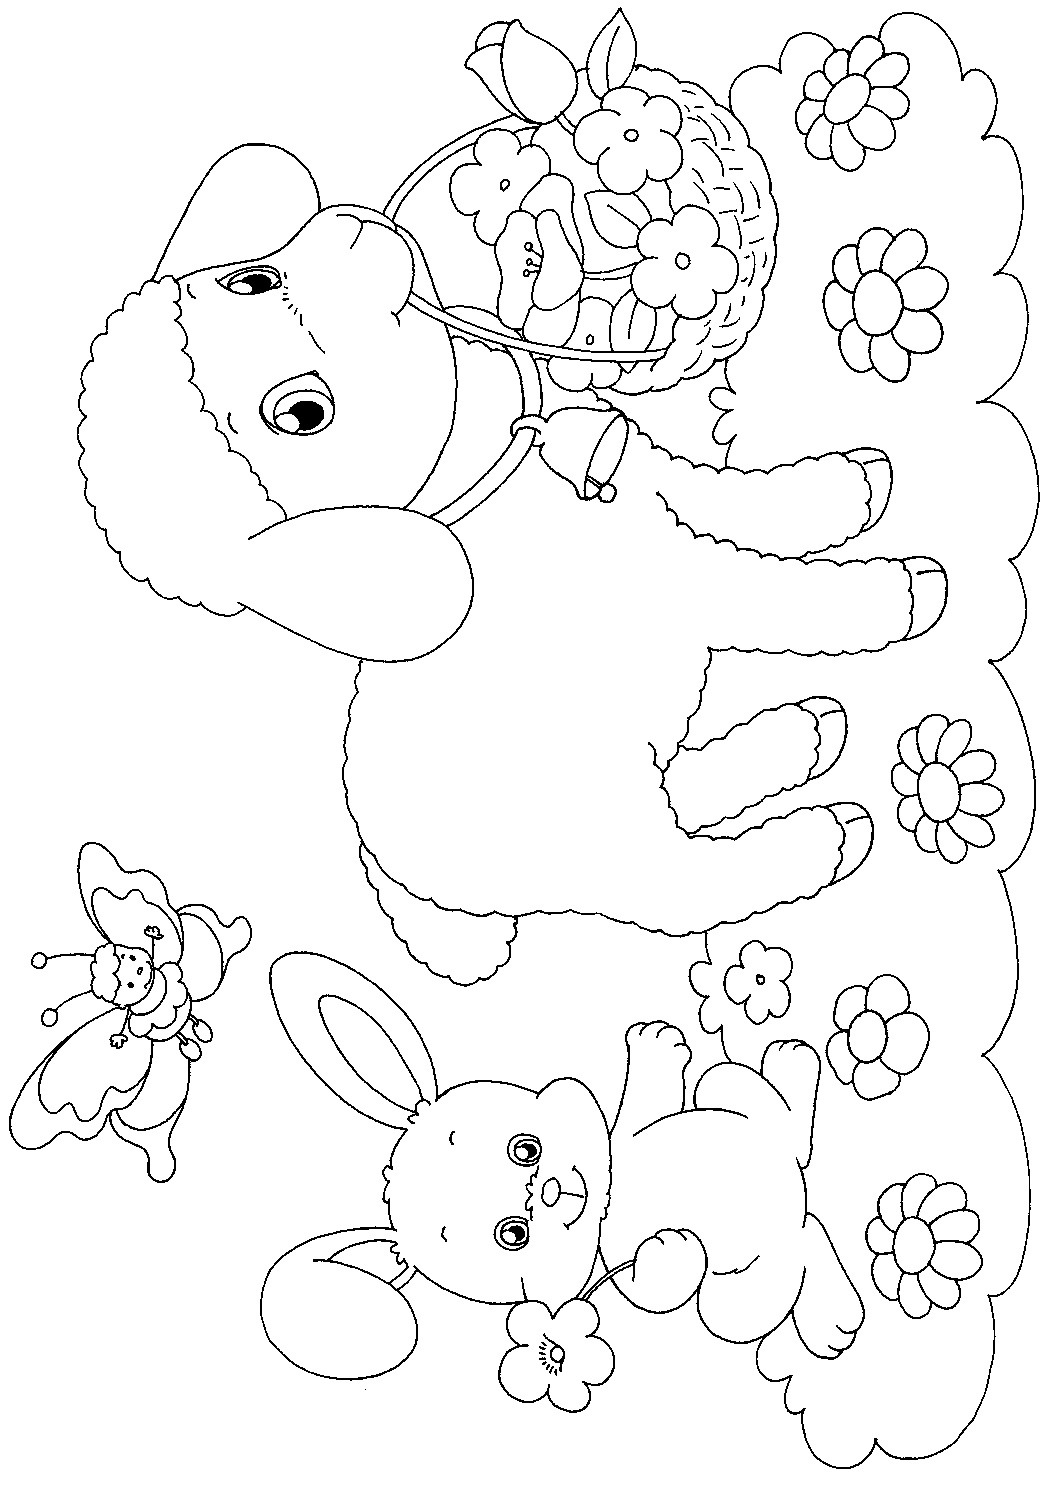 Sprint coloring pages ~ EASTER COLOURING: EASTER PAPER CRAFT TO PRINT AND COLOUR